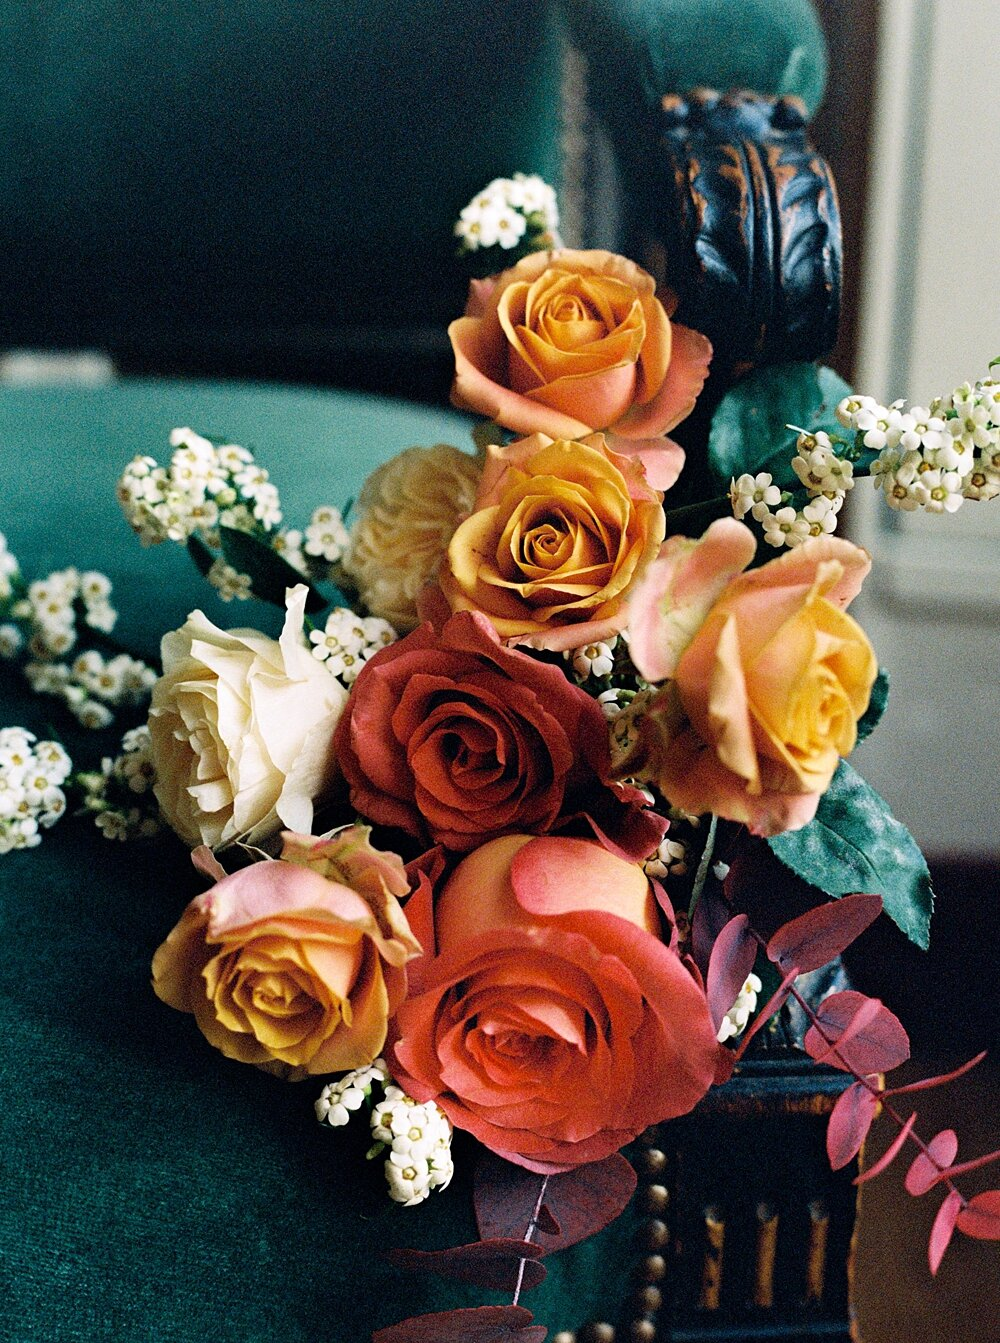 Fall rose bouquet with orange and red roses sitting on an emerald velvet chair